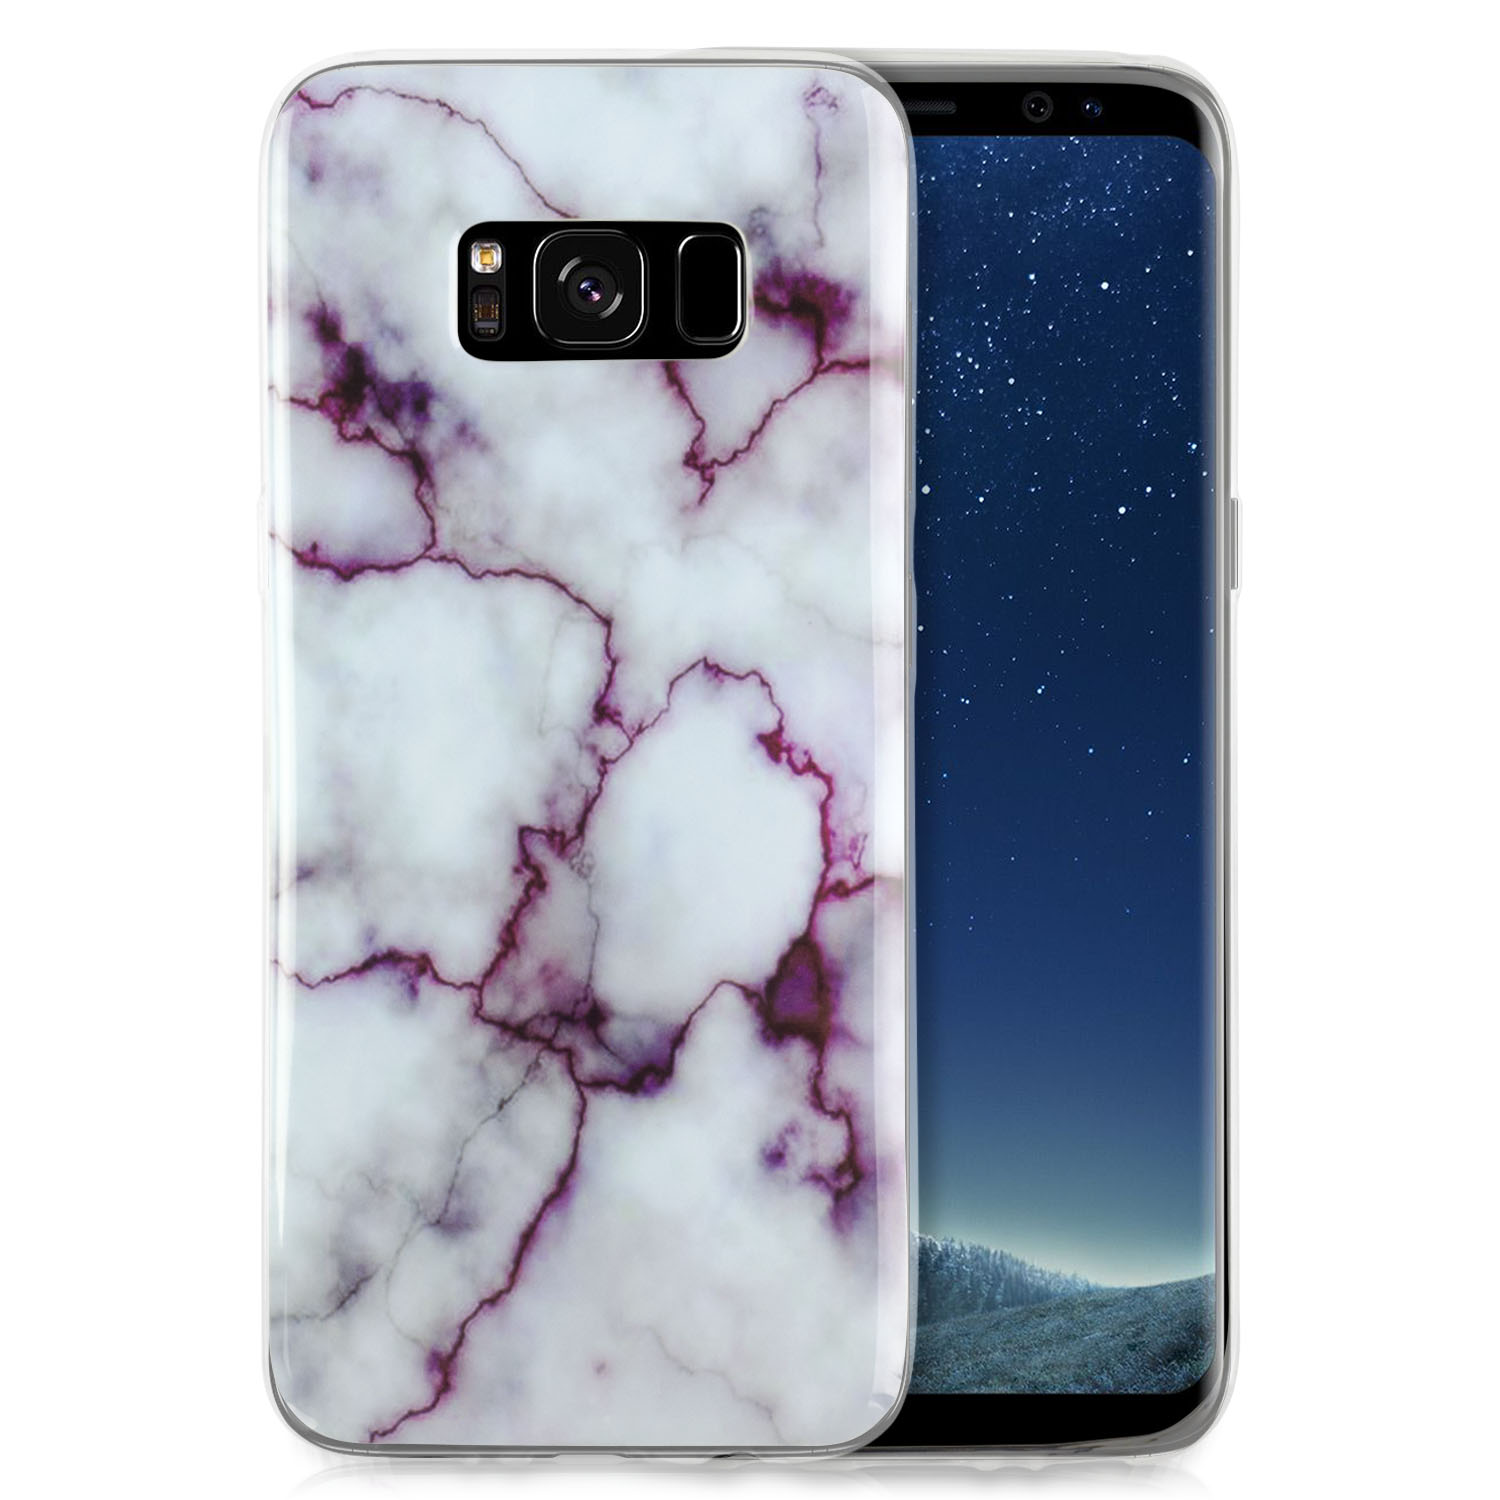 Samsung Galaxy S8 Plus Case, GolemGuard Marble Stone Pattern Front & Back Protection Case for Galaxy S8 Plus Soft Gel Anti-Scratch Cover TPU - PARENT